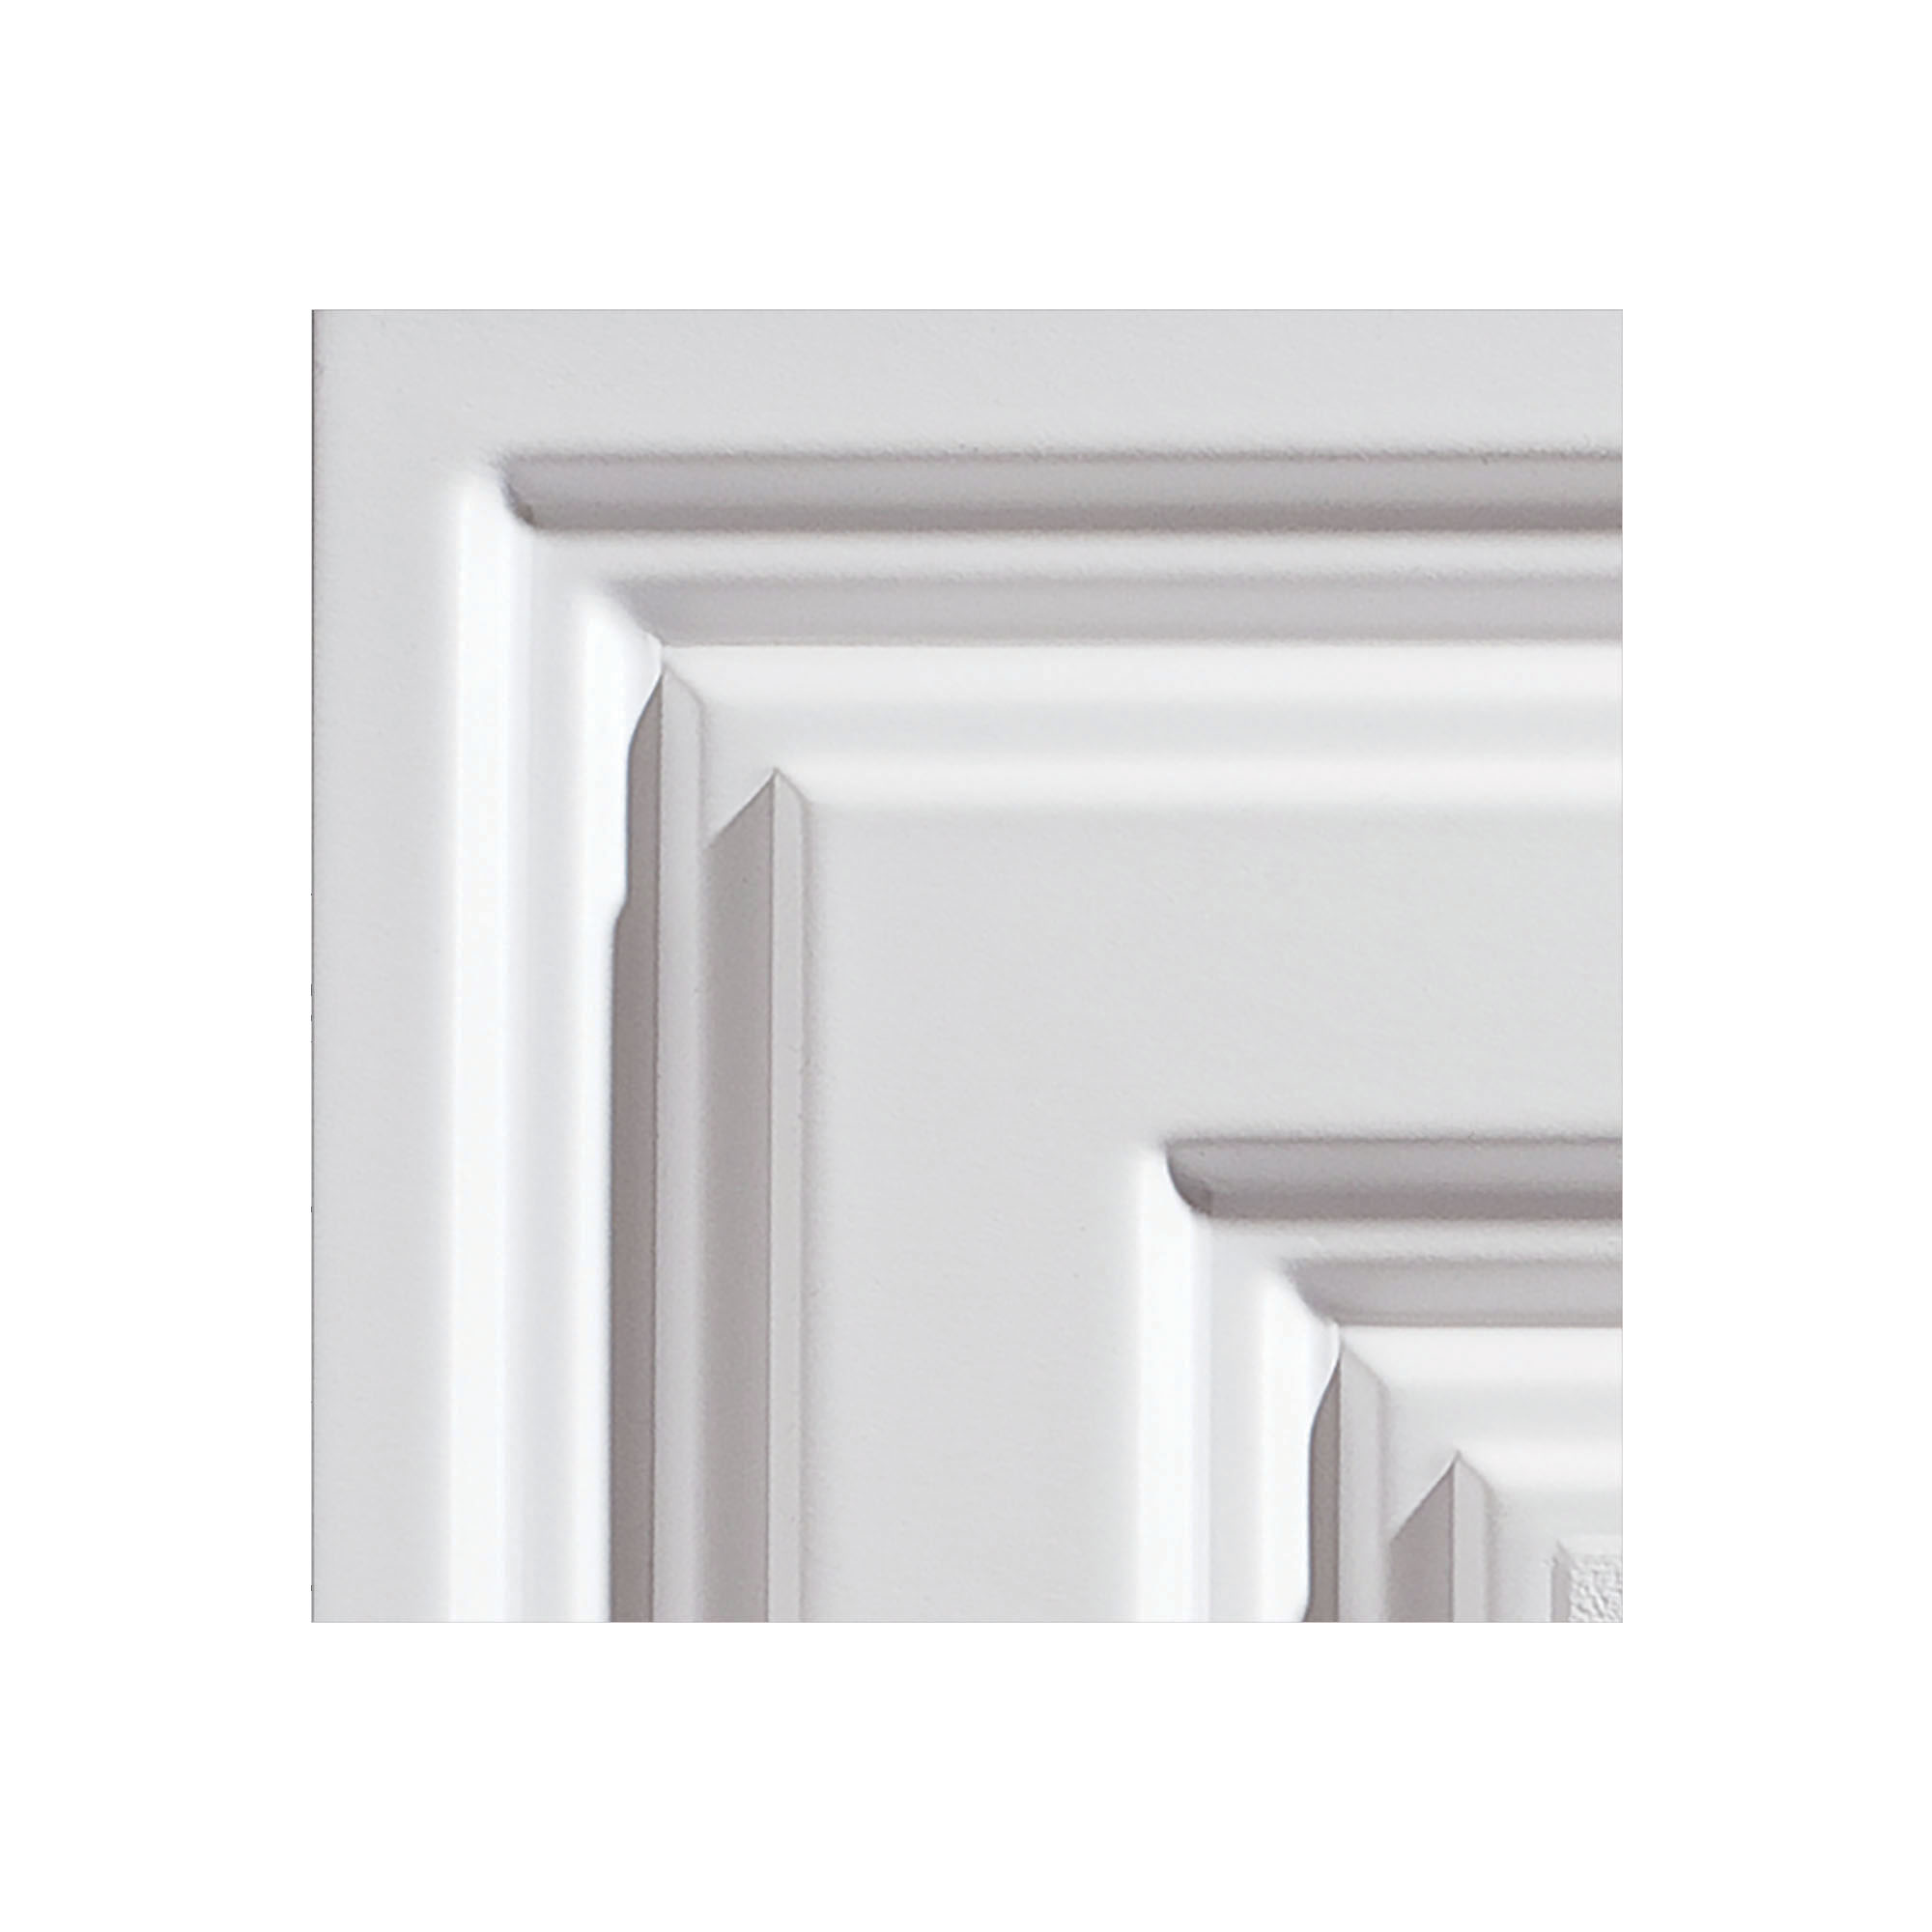 genesis icon relief white ceiling tiles easy drop in installation waterproof washable and fire rated high grade pvc to prevent breakage 12 x